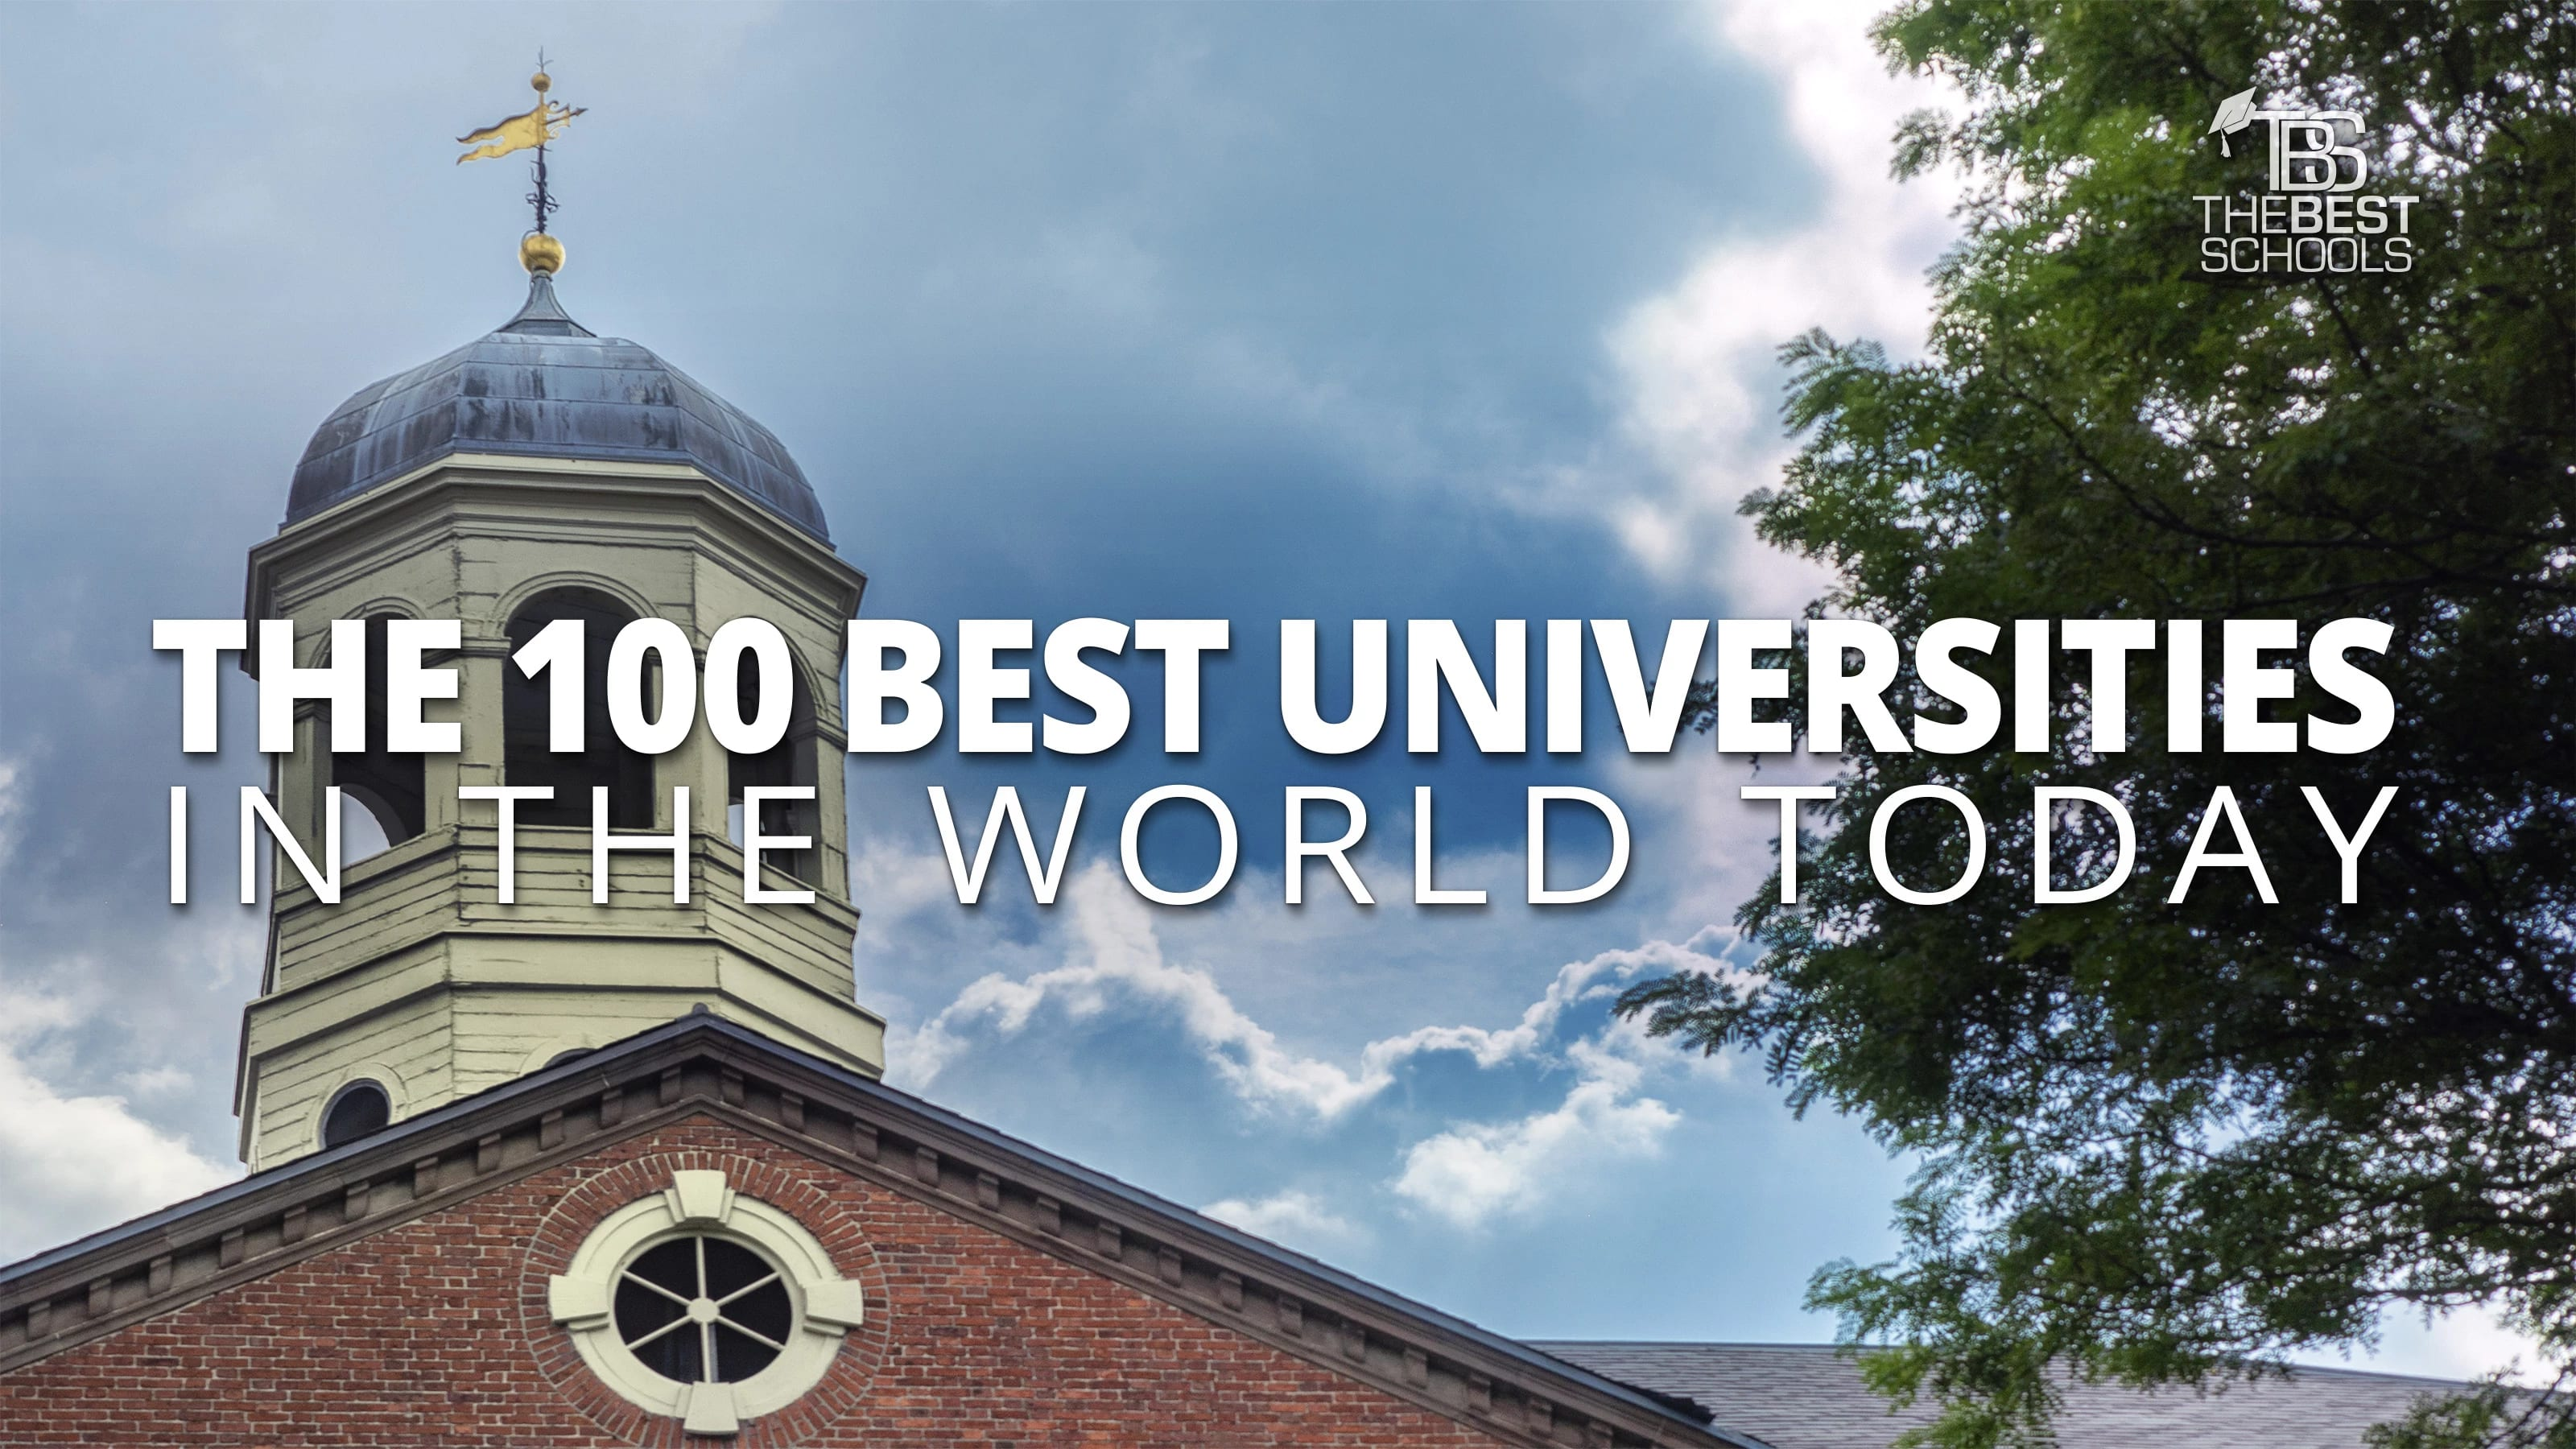 The 100 Best Universities in the World Today